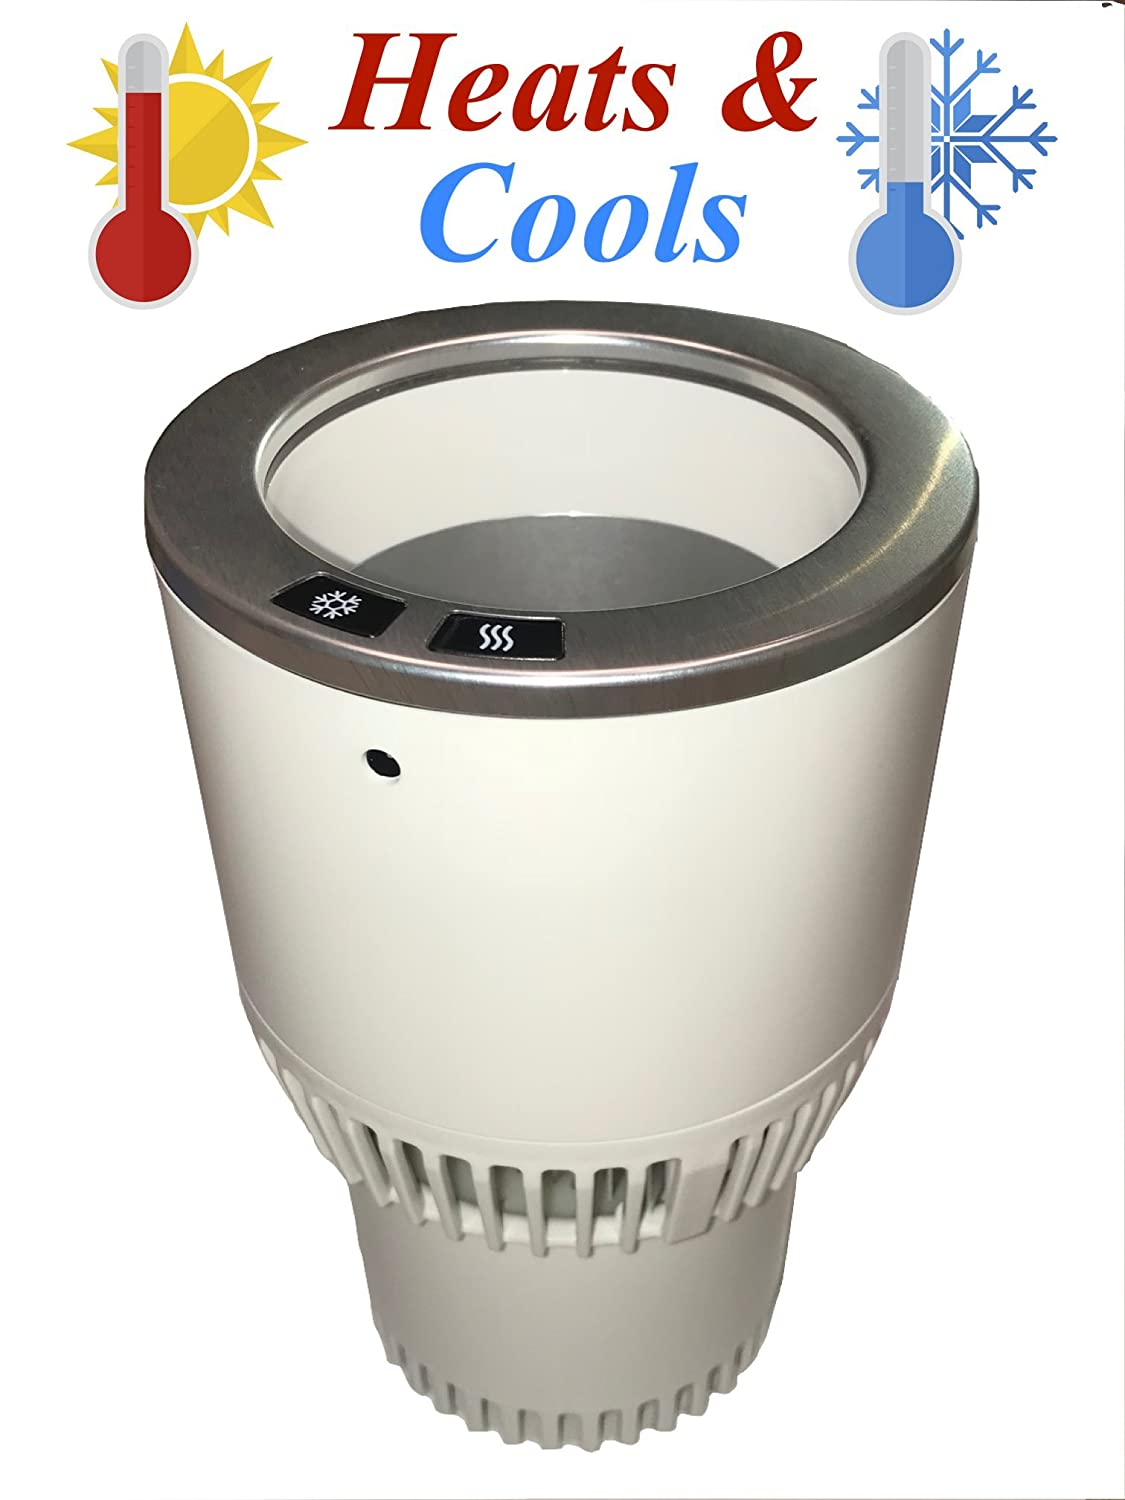 APG Car Cup Holder Cooler & Warmer to Keep Coffee, Cans, Drinks and Beverages Cool or Warm Ascent Products Group